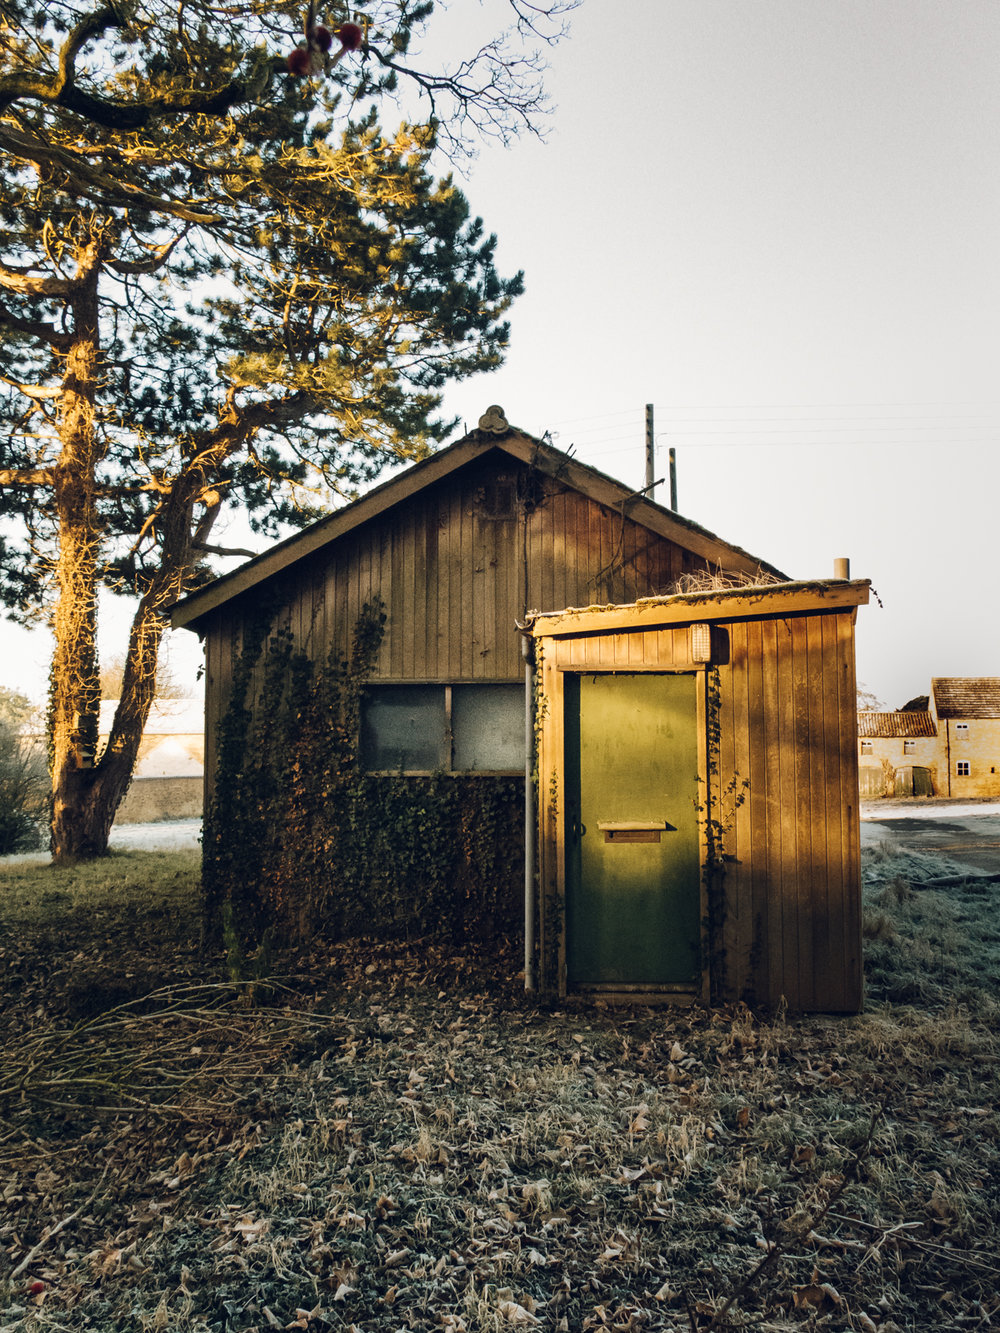 Tired old charming wooden shed.